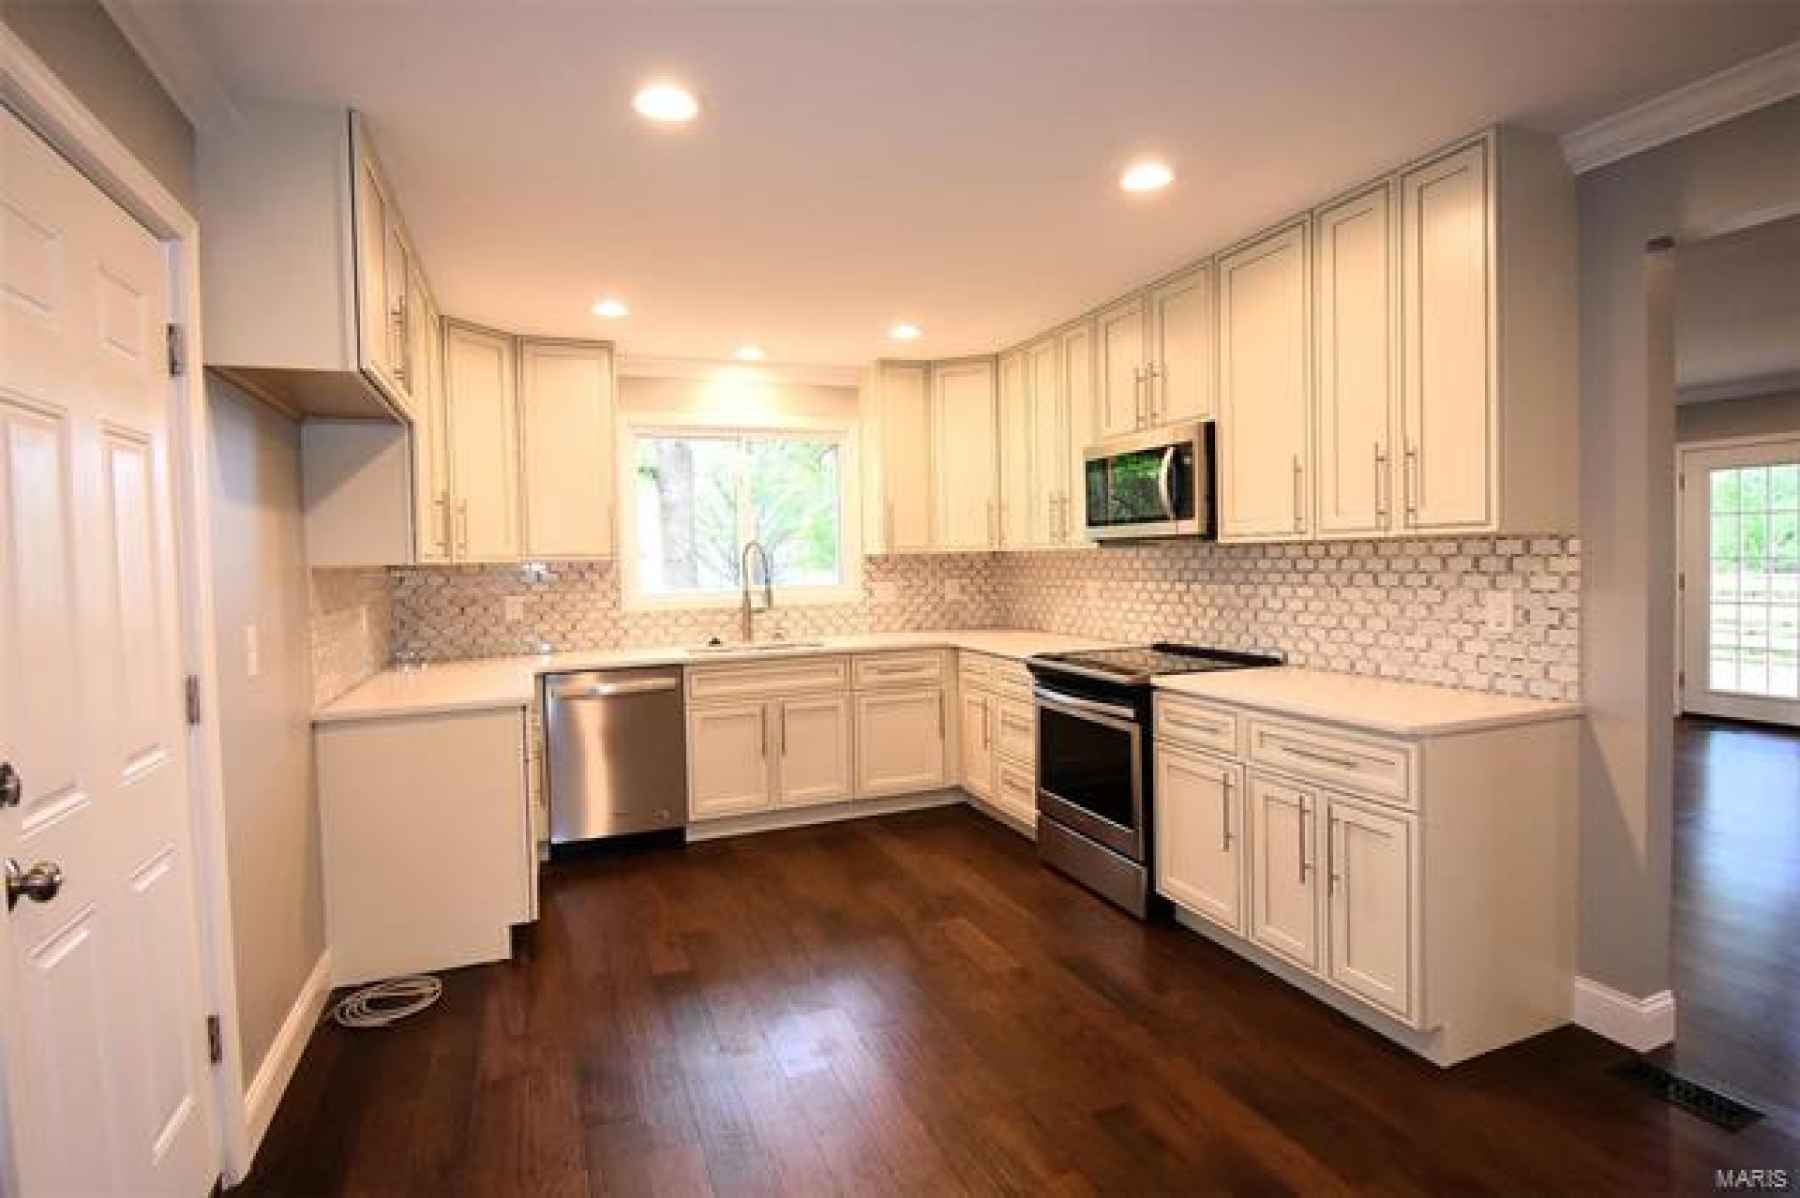 KITCHEN - NEW STYLISH CABINETS, QUARTS COUNTER TOP, BEAUTIFUL BACKSPLASH & STAINLESS STEEL APPLIANCES.